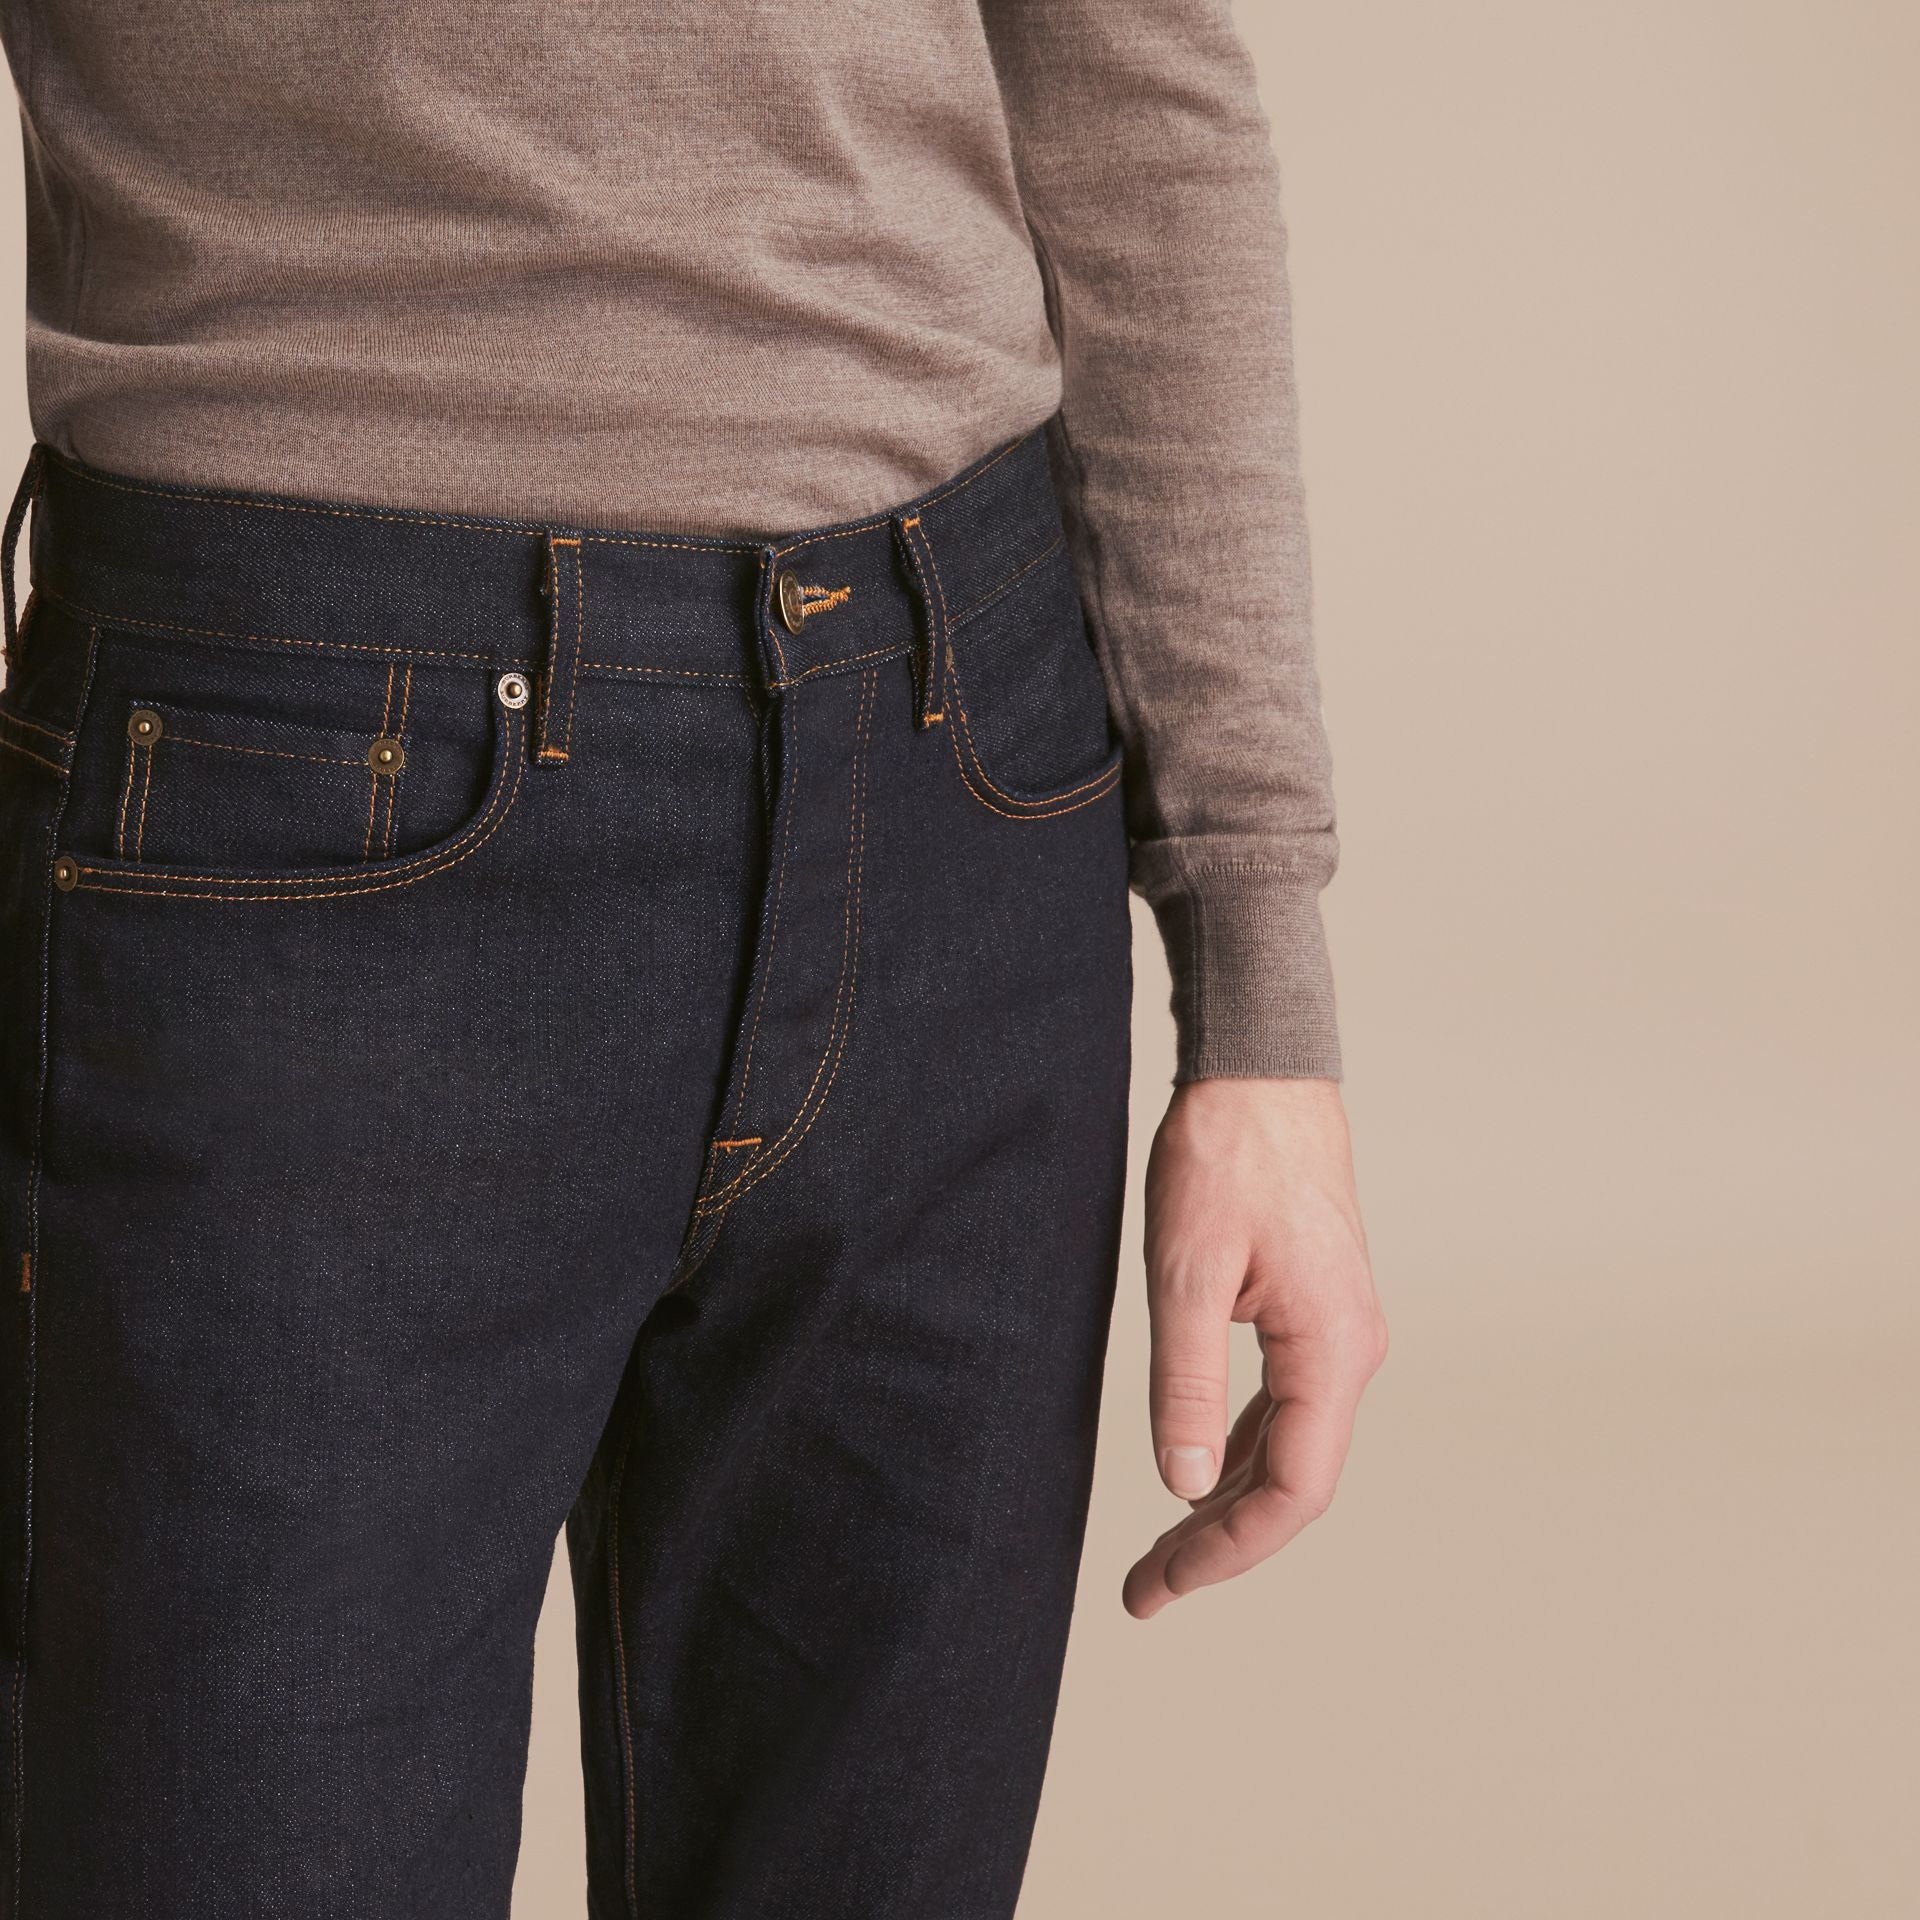 Relaxed Fit Comfort Stretch Indigo Japanese Denim Jeans in Dark - Men | Burberry - gallery image 4